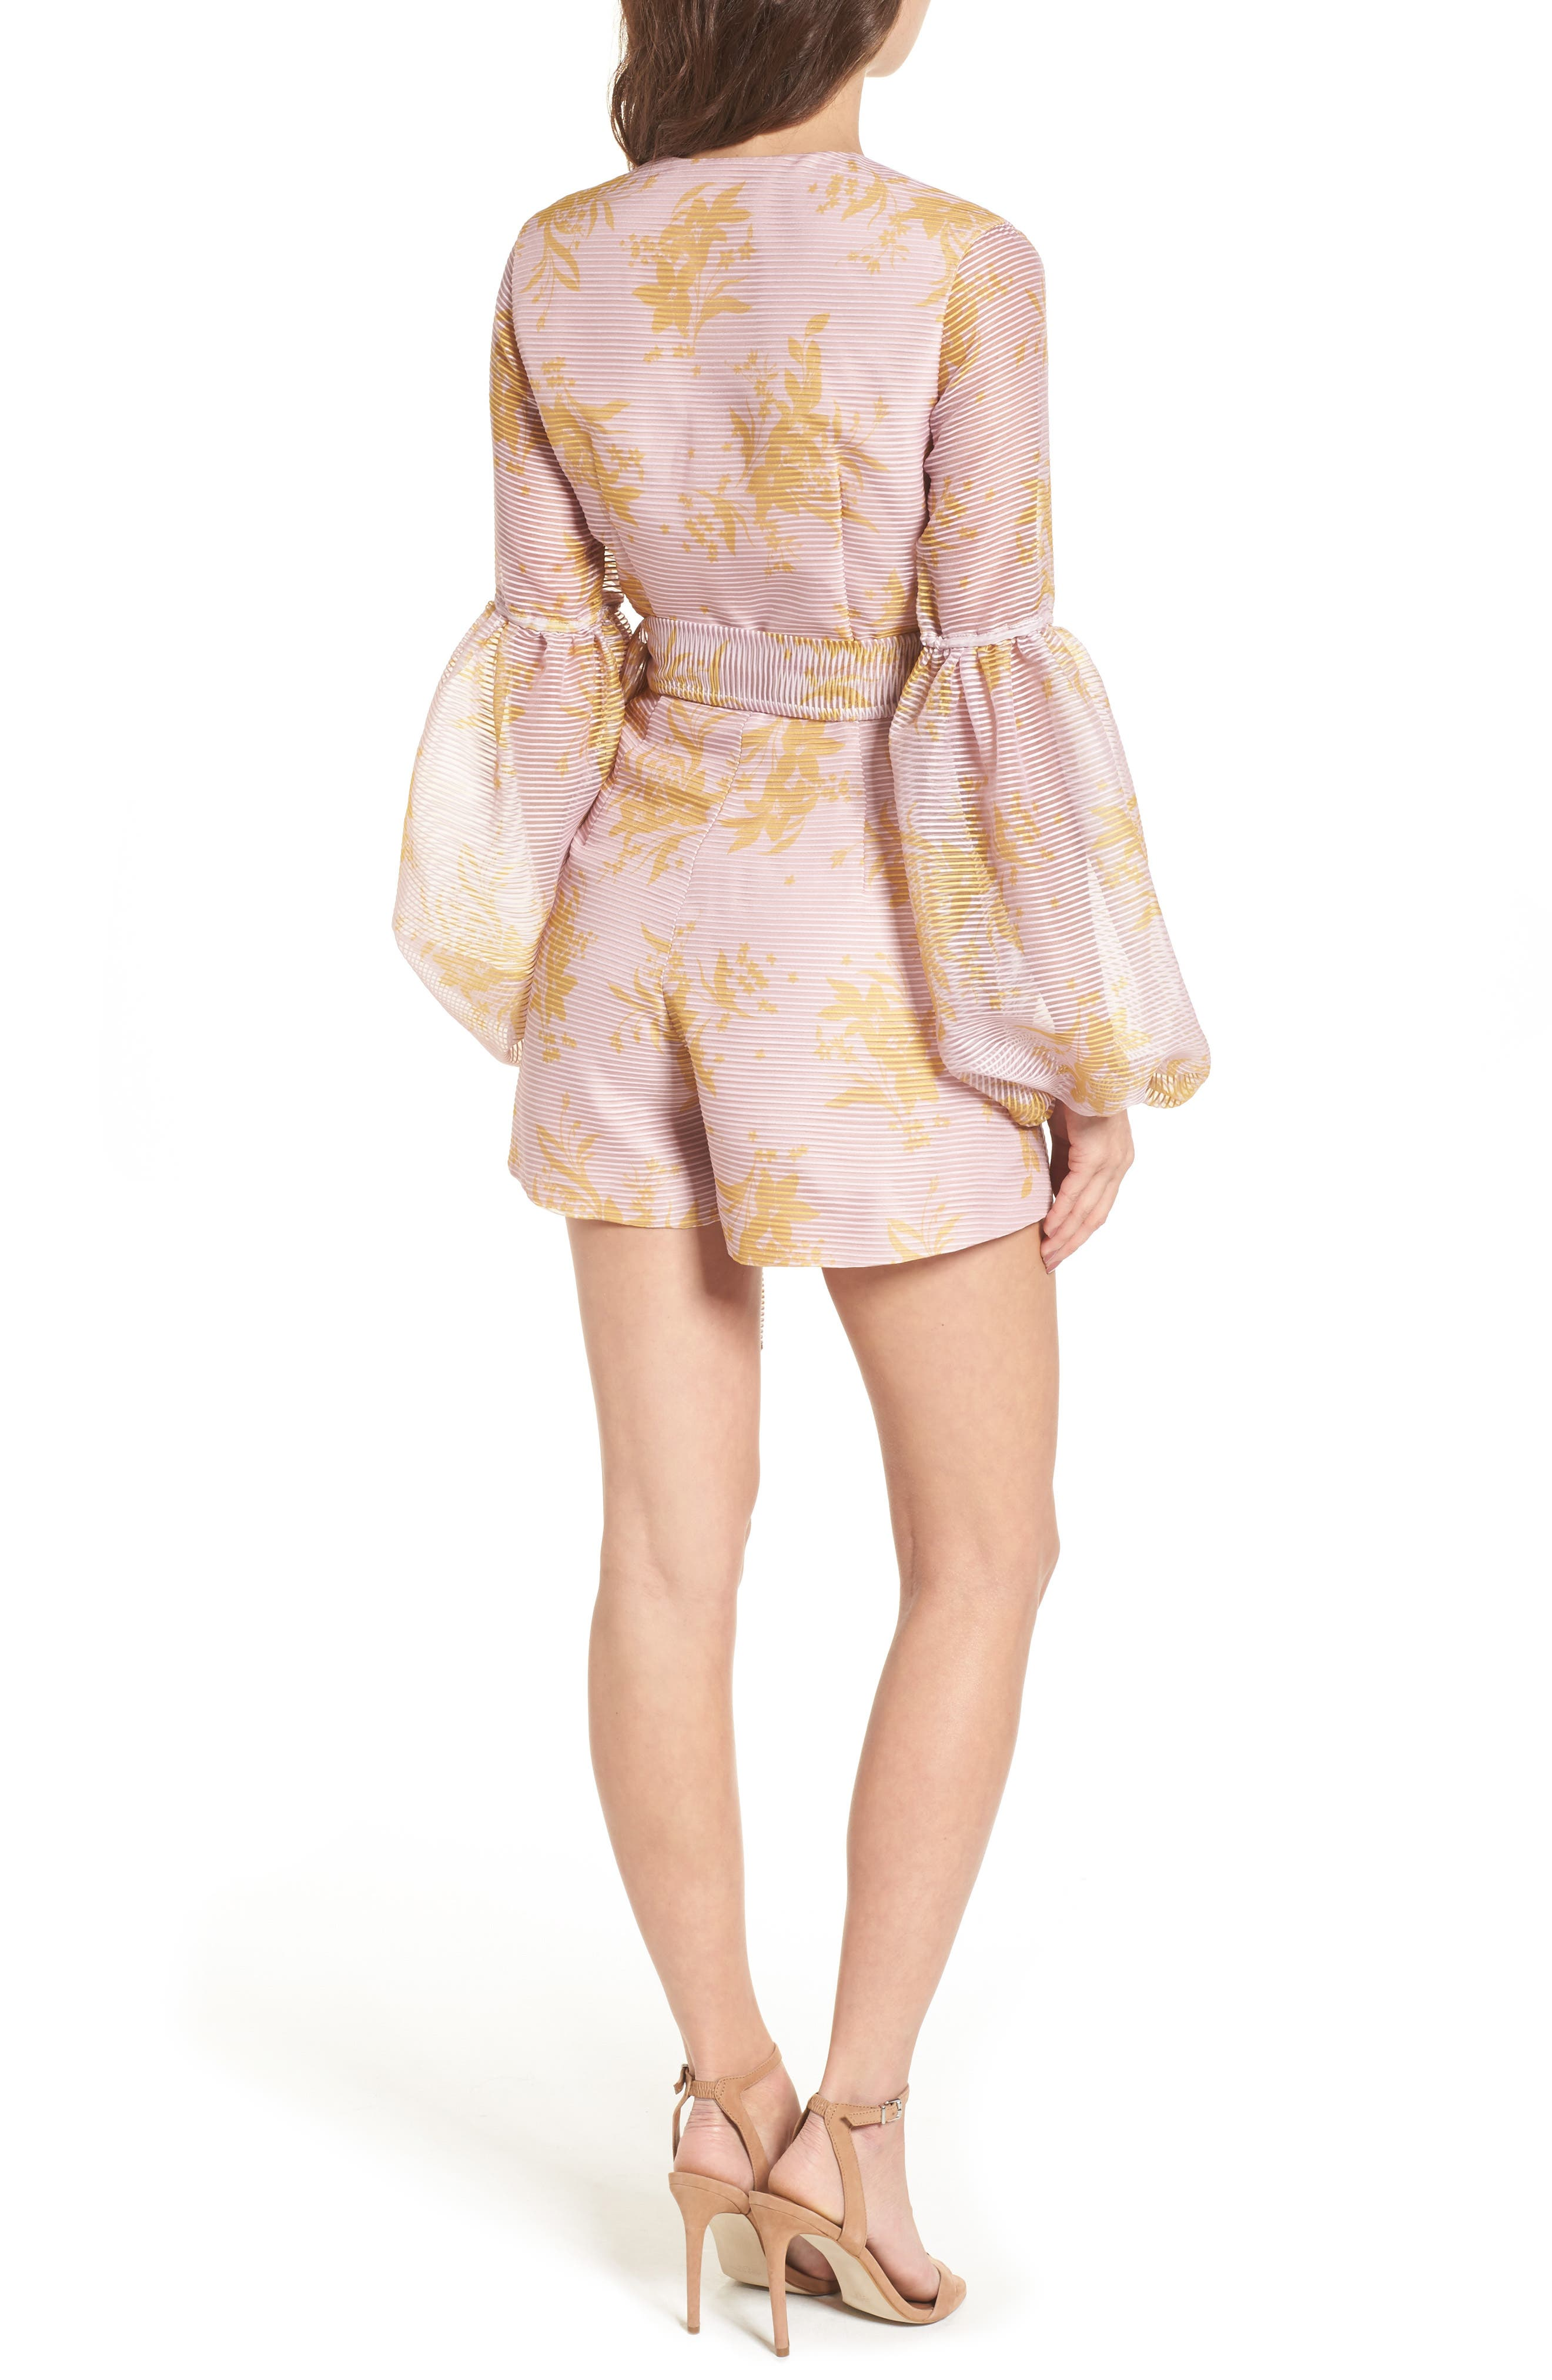 Stand Tall Romper,                             Alternate thumbnail 2, color,                             650